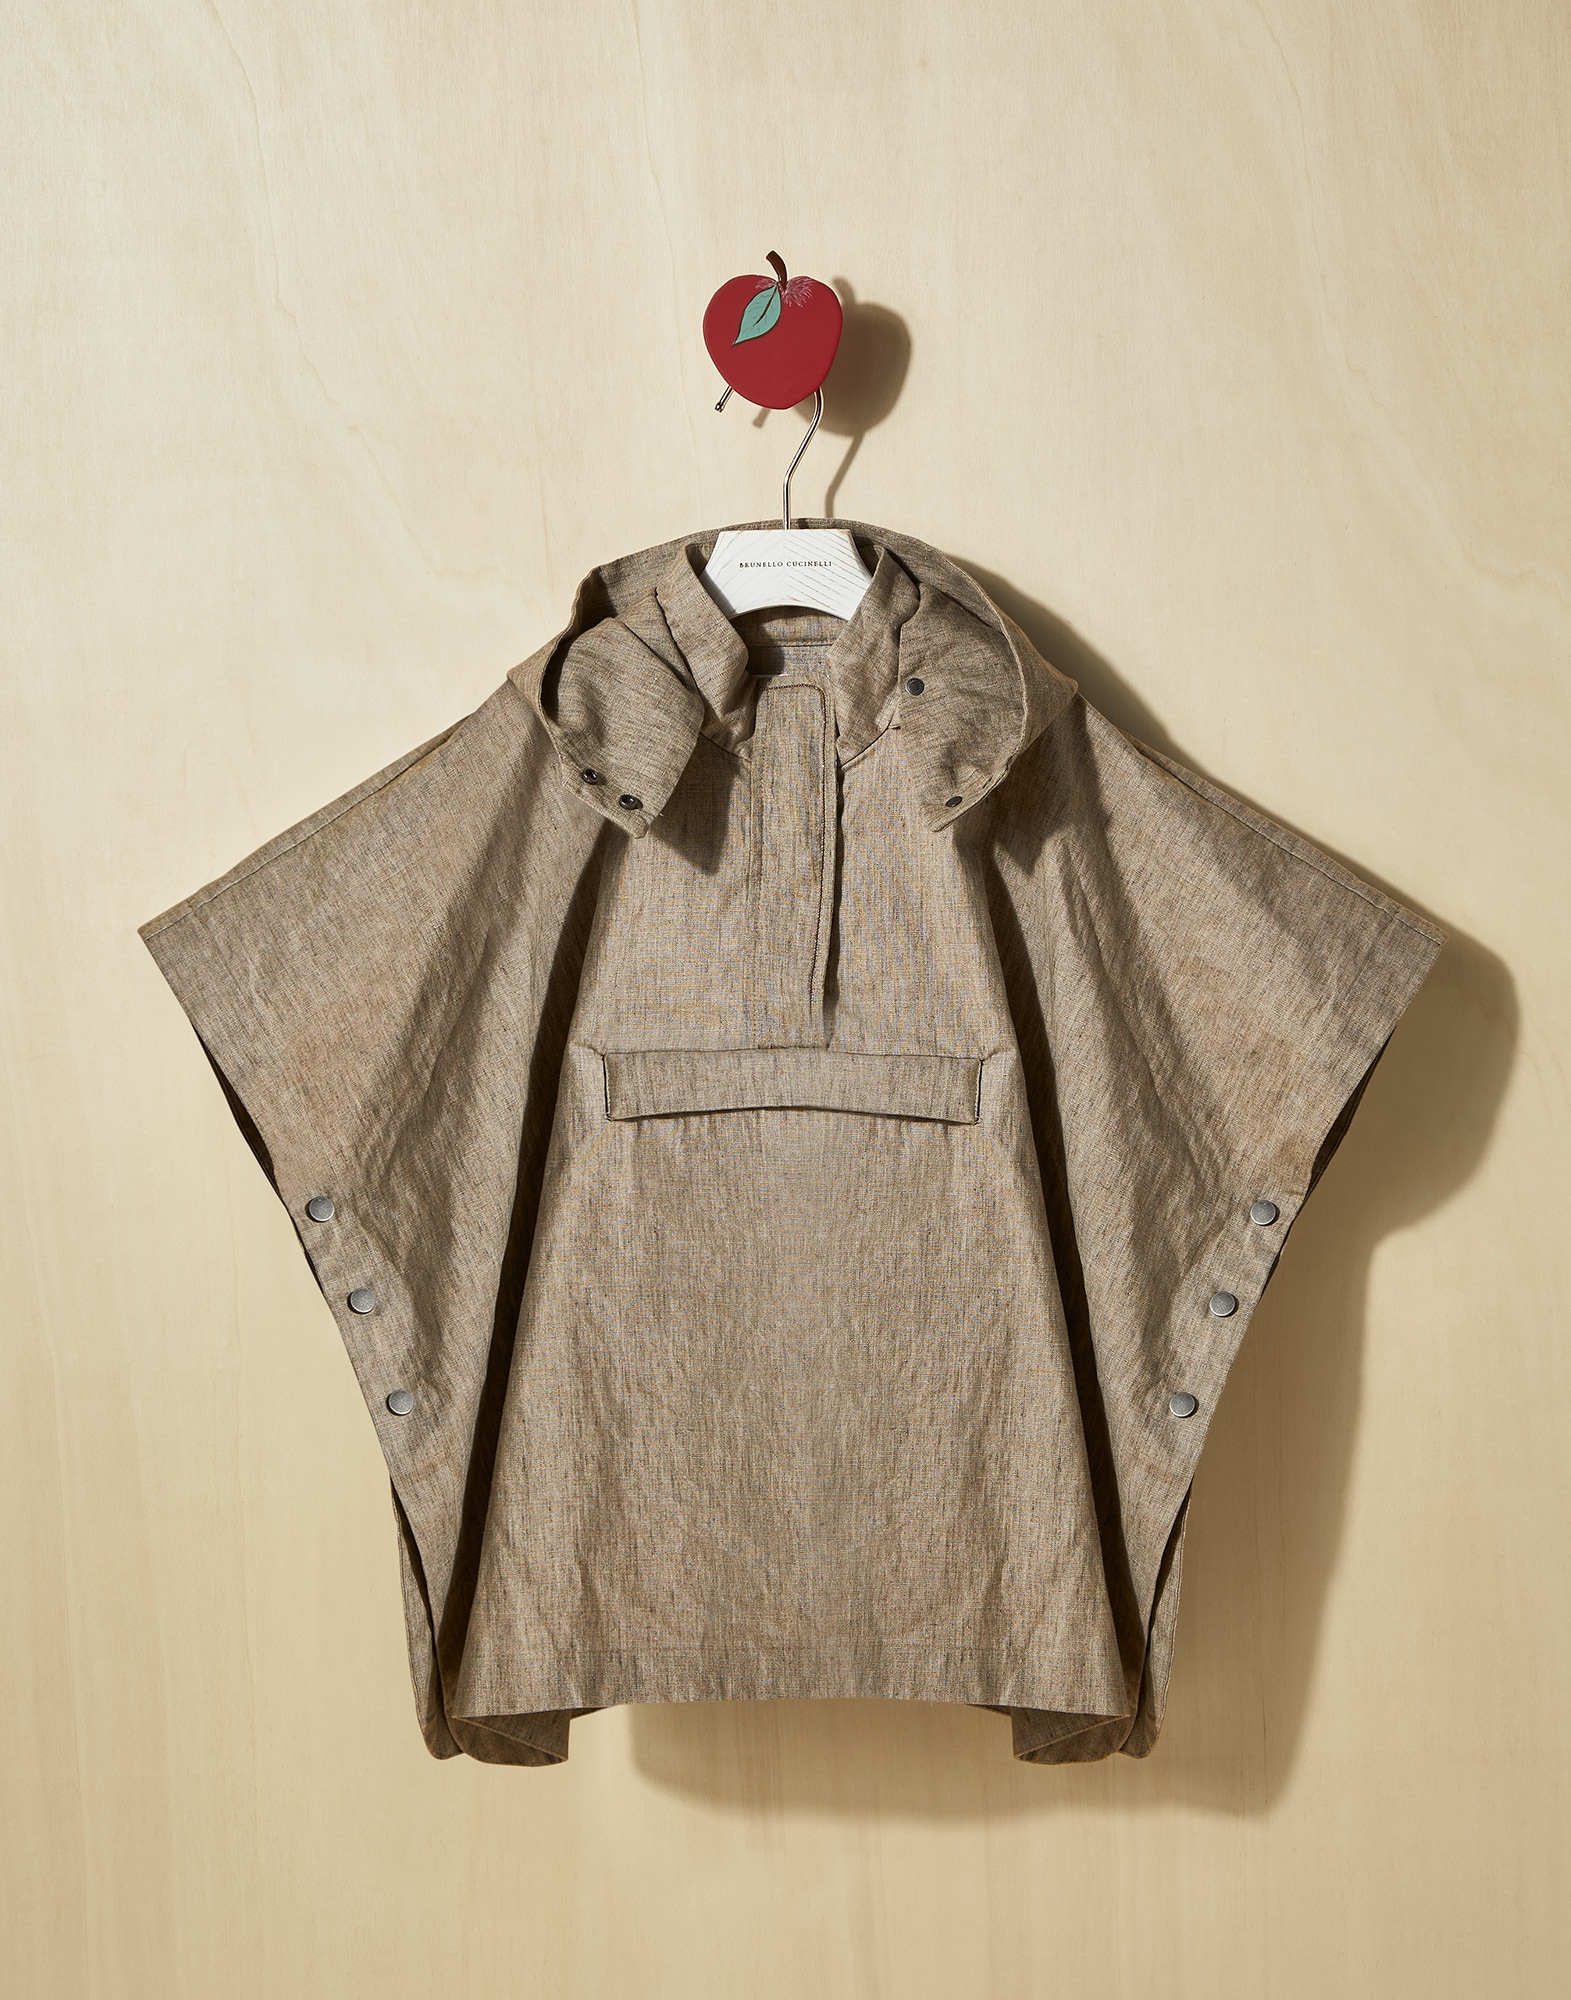 Outerwear Jacket - Front view